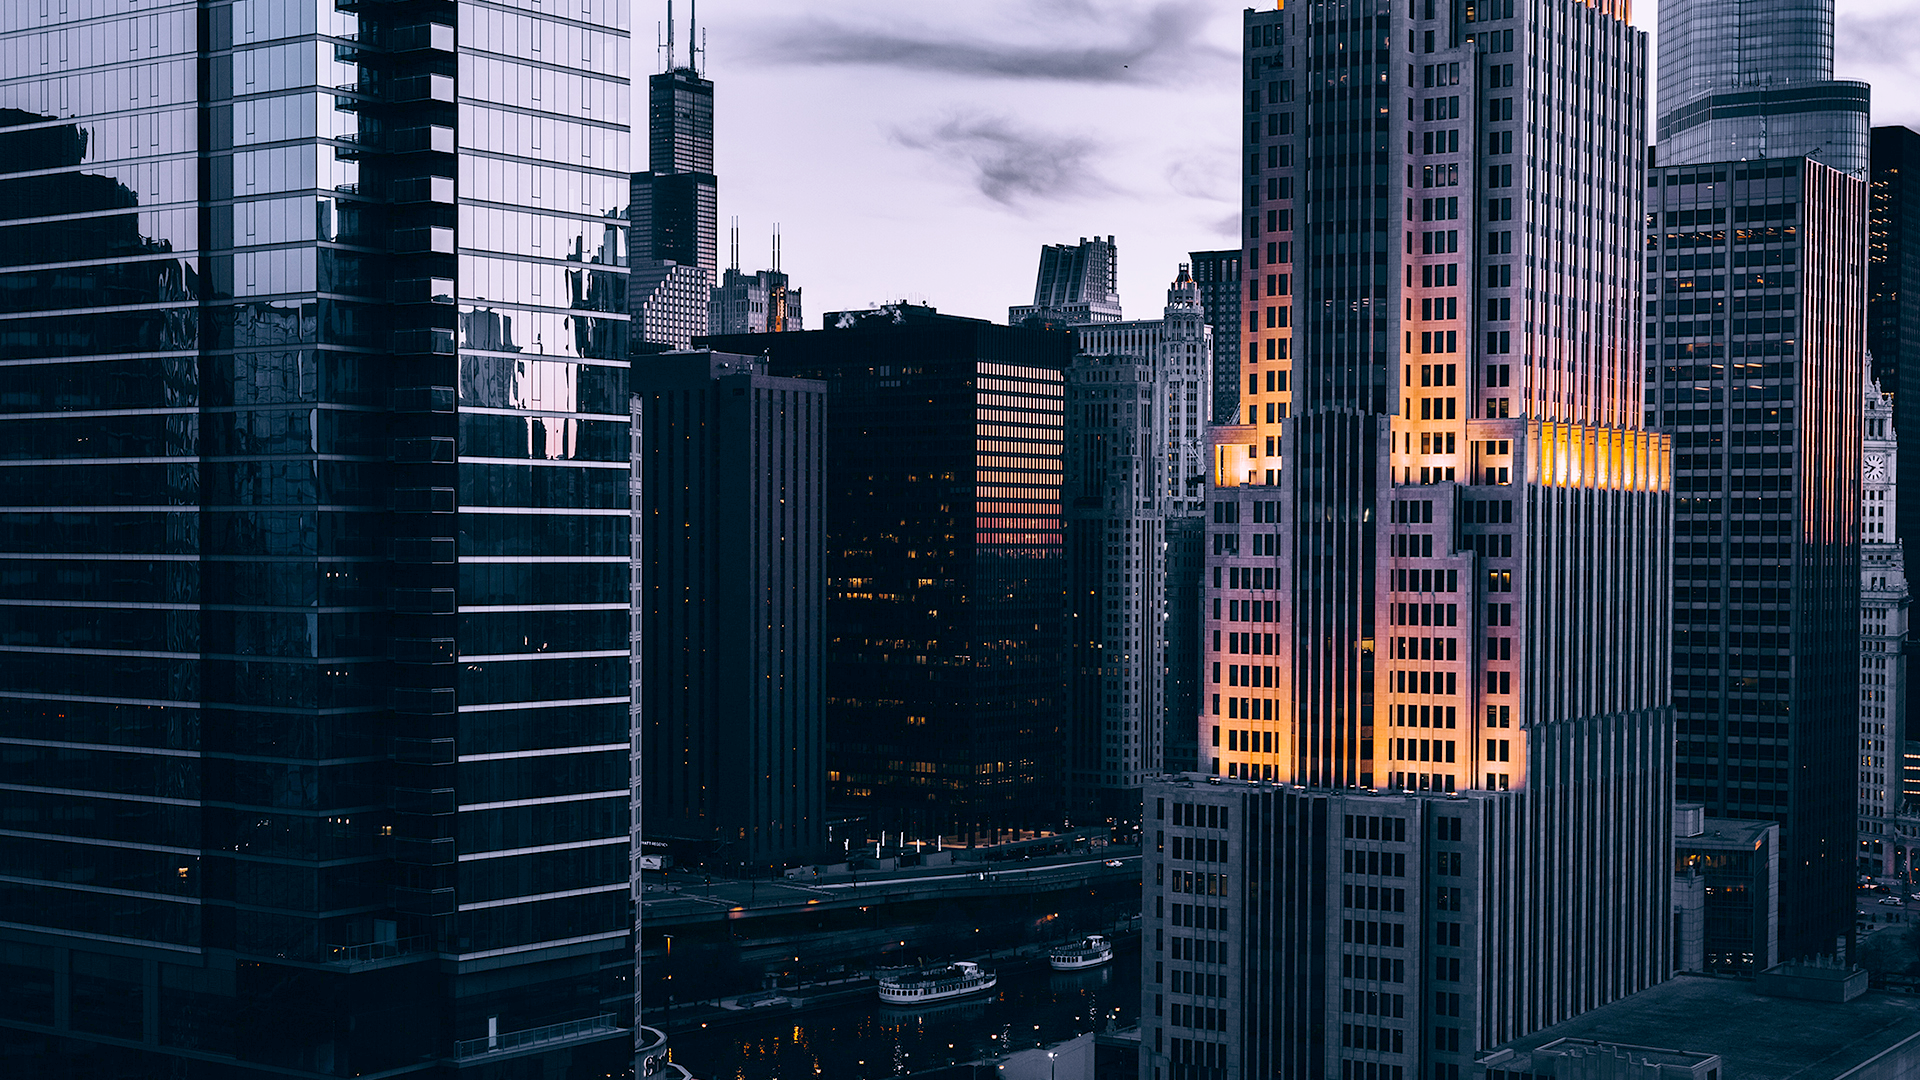 Chicago PostPunk Blue [1920x1080] (With images) R